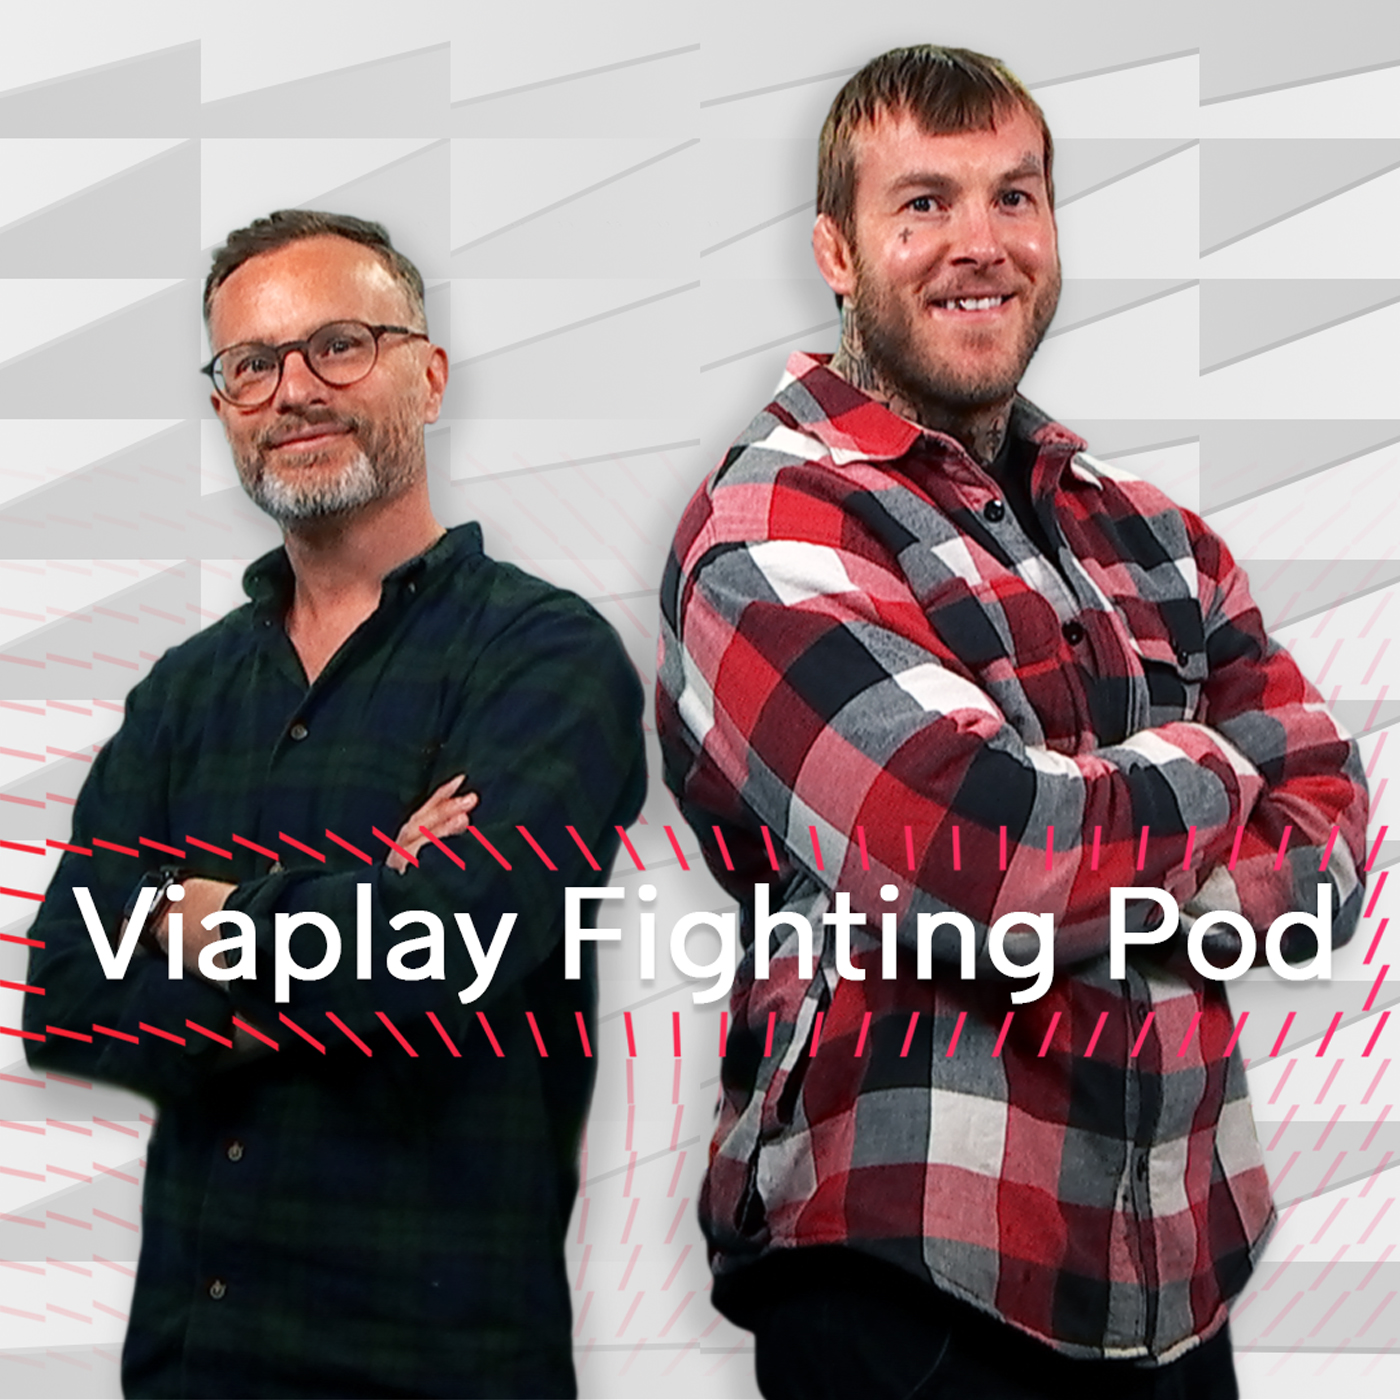 Viaplay Fighting Pod